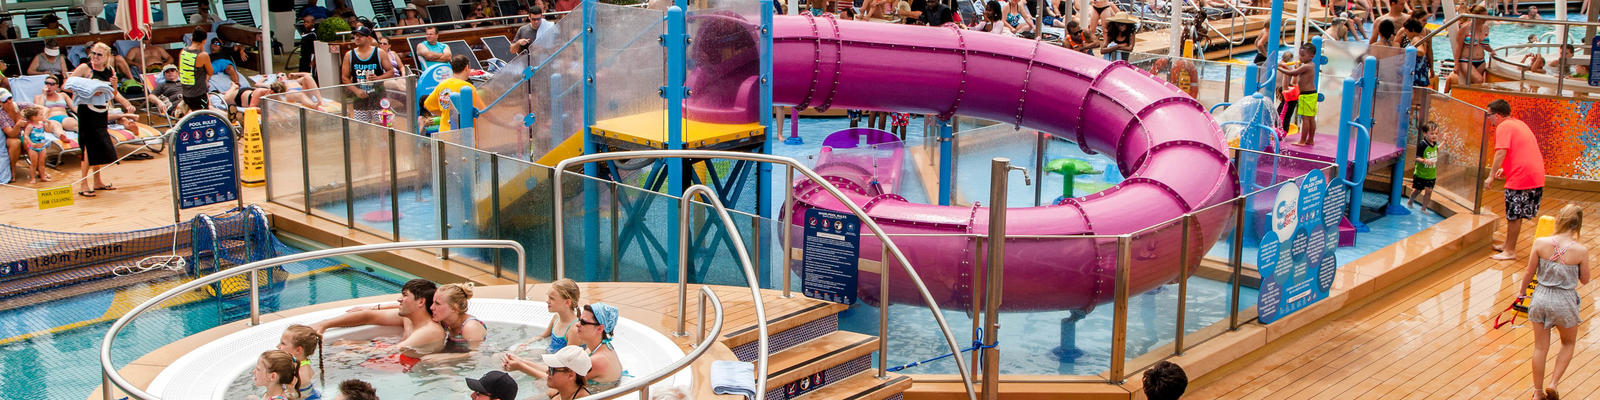 Royal Caribbean Water Parks: H2O Zone vs. Splashaway Bay (Photo: Cruise Critic)